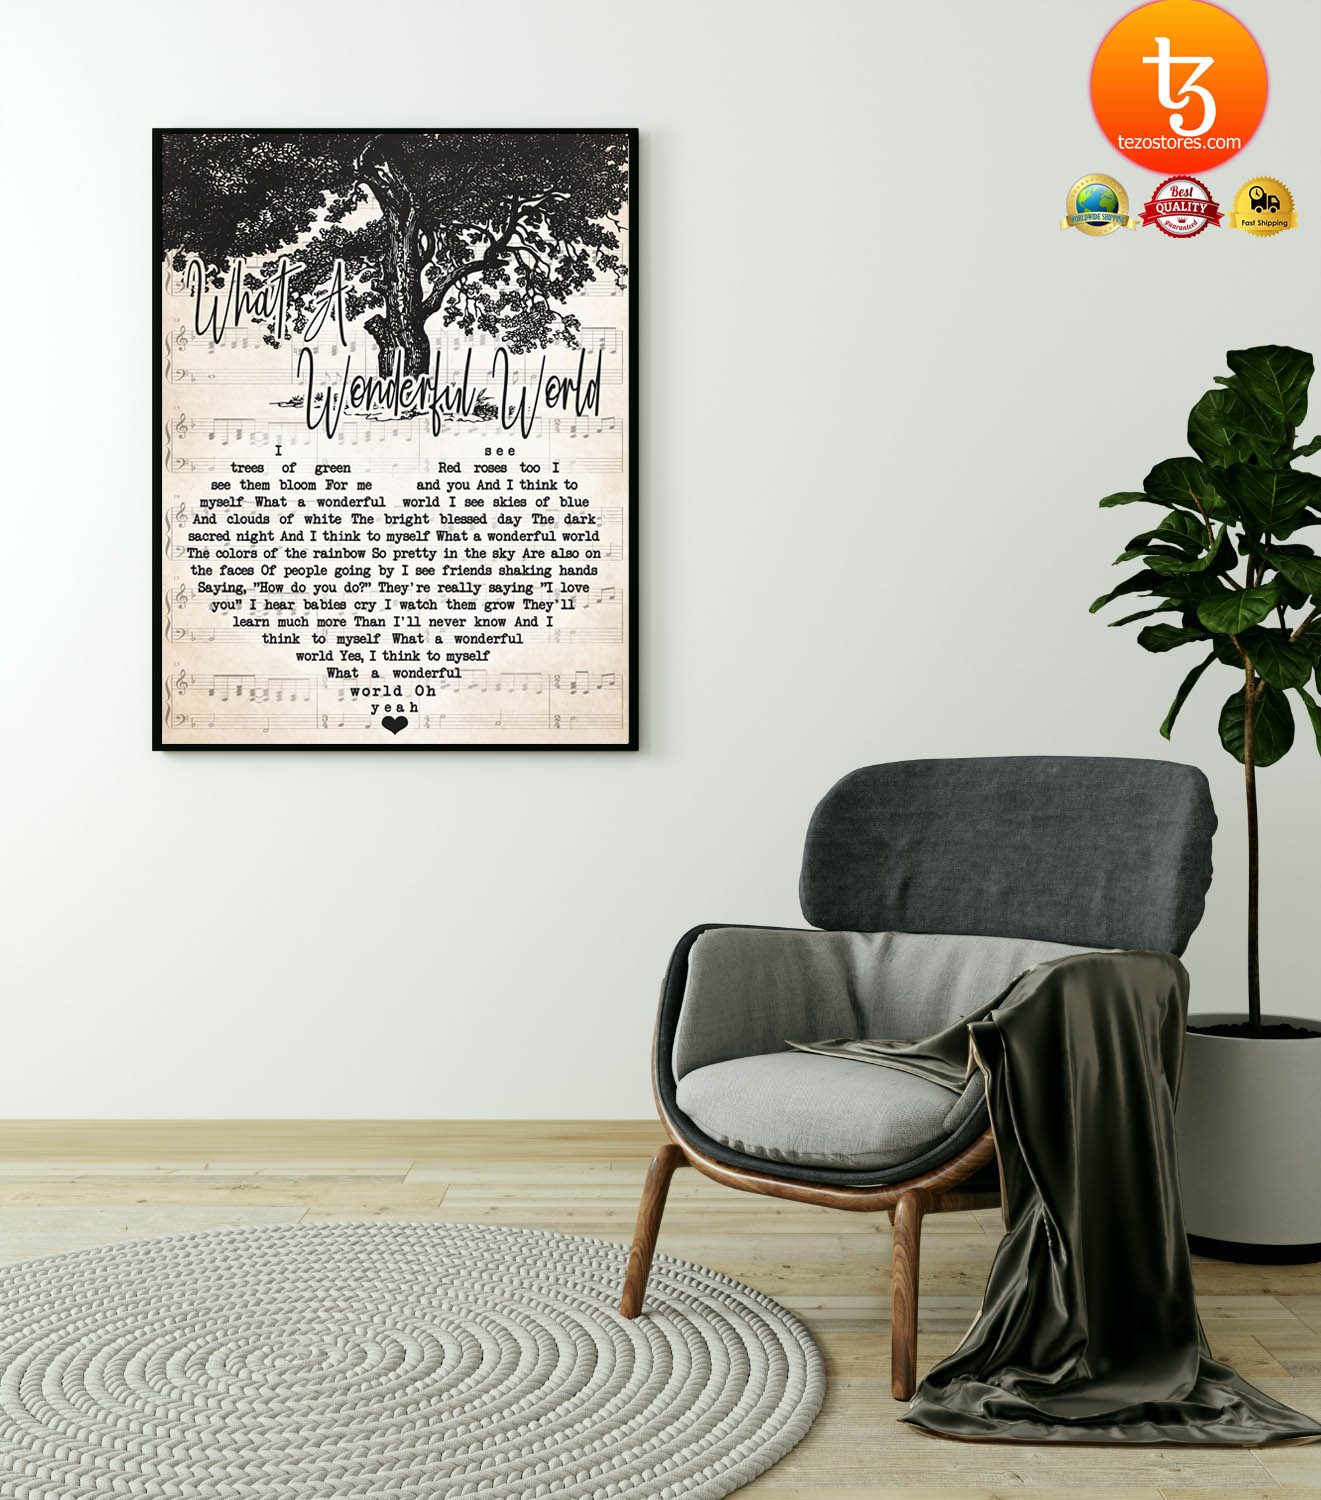 What a wonderful world I trees of green see them blood for me poster